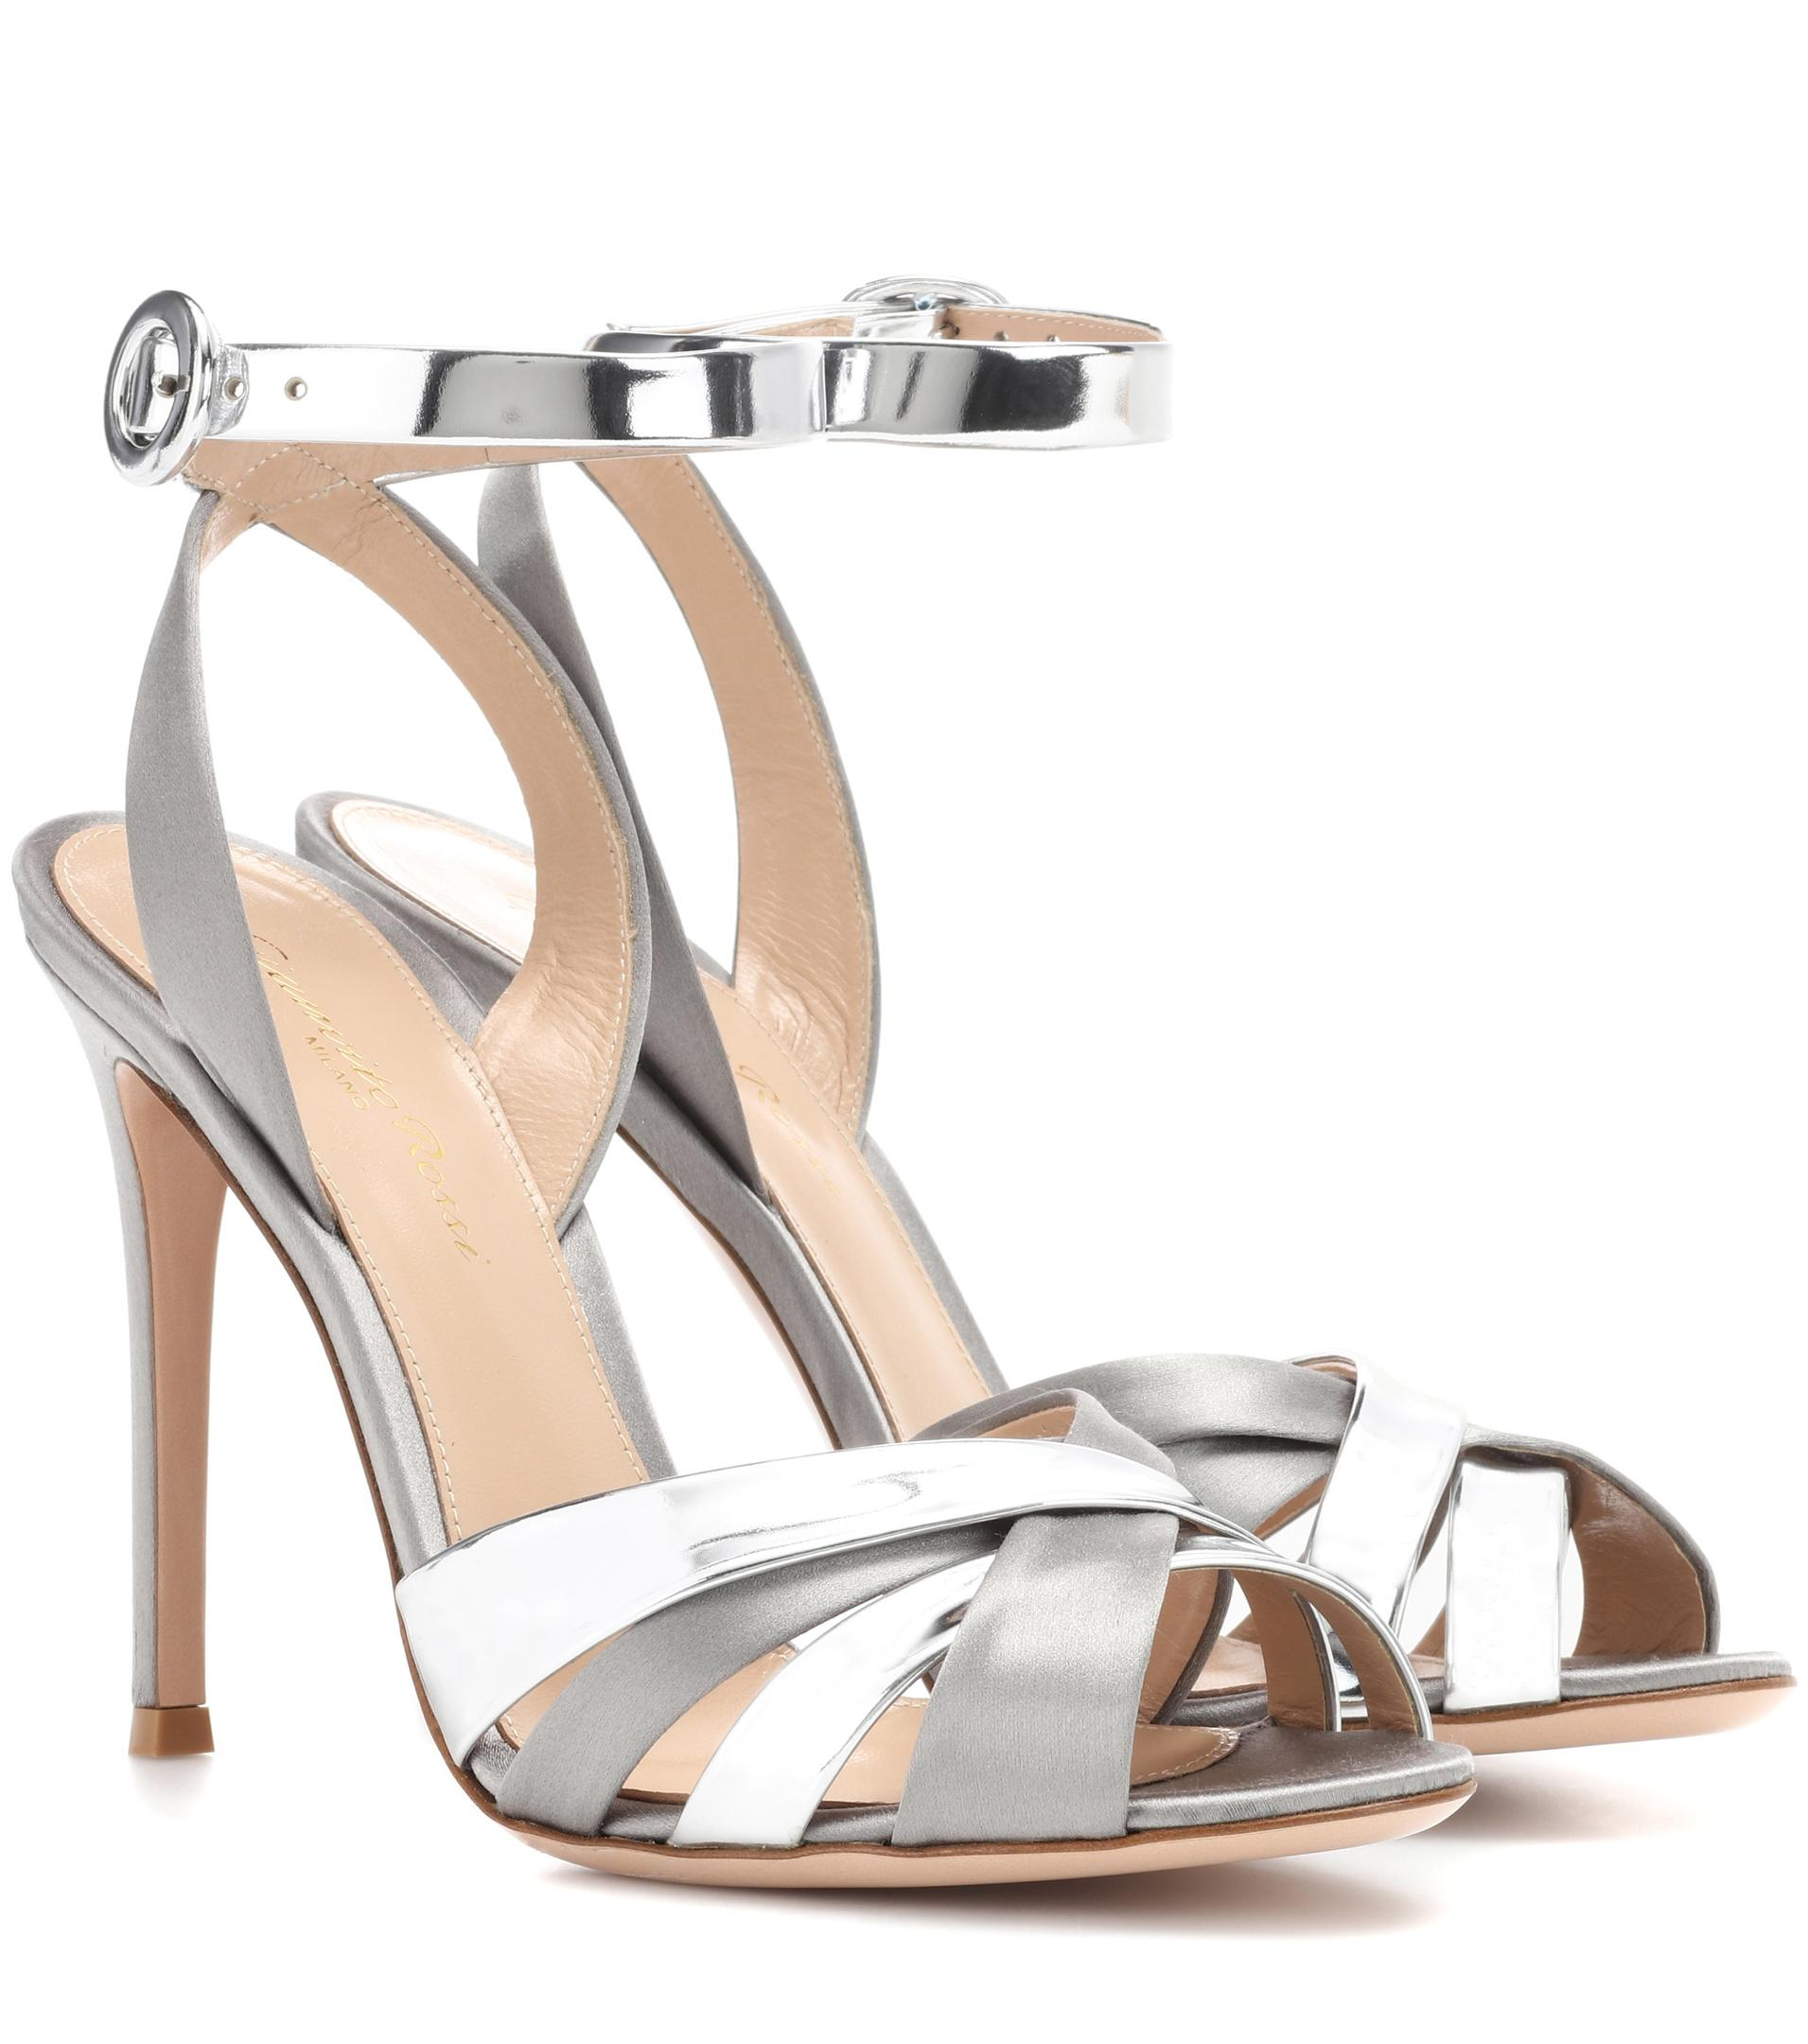 store with big discount Gianvito Rossi Metallic Multistrap Sandals buy cheap 100% authentic explore sale excellent 3h6KbDDM